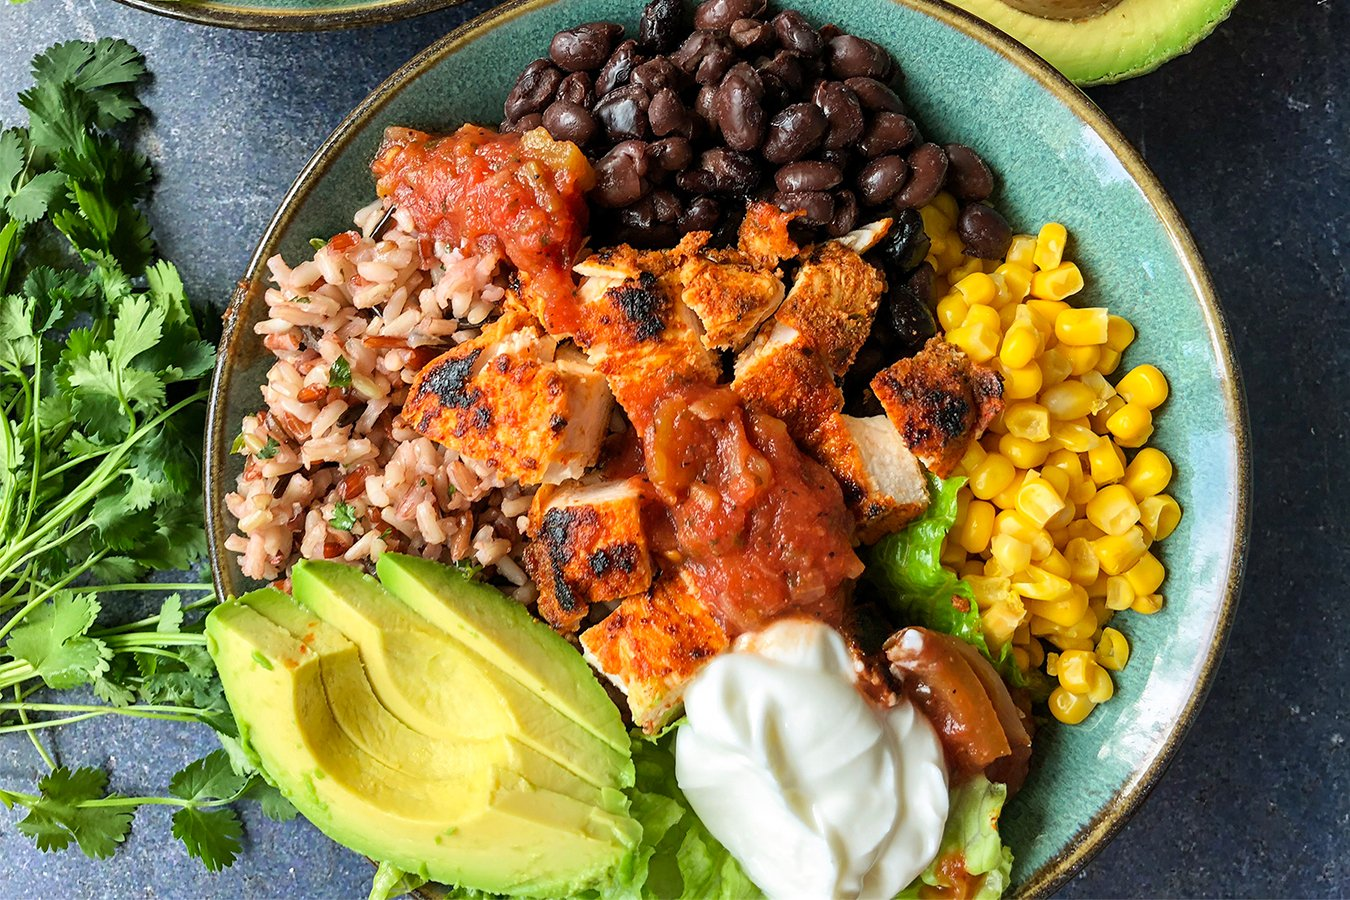 Chili Lime Chicken Burrito Bowls